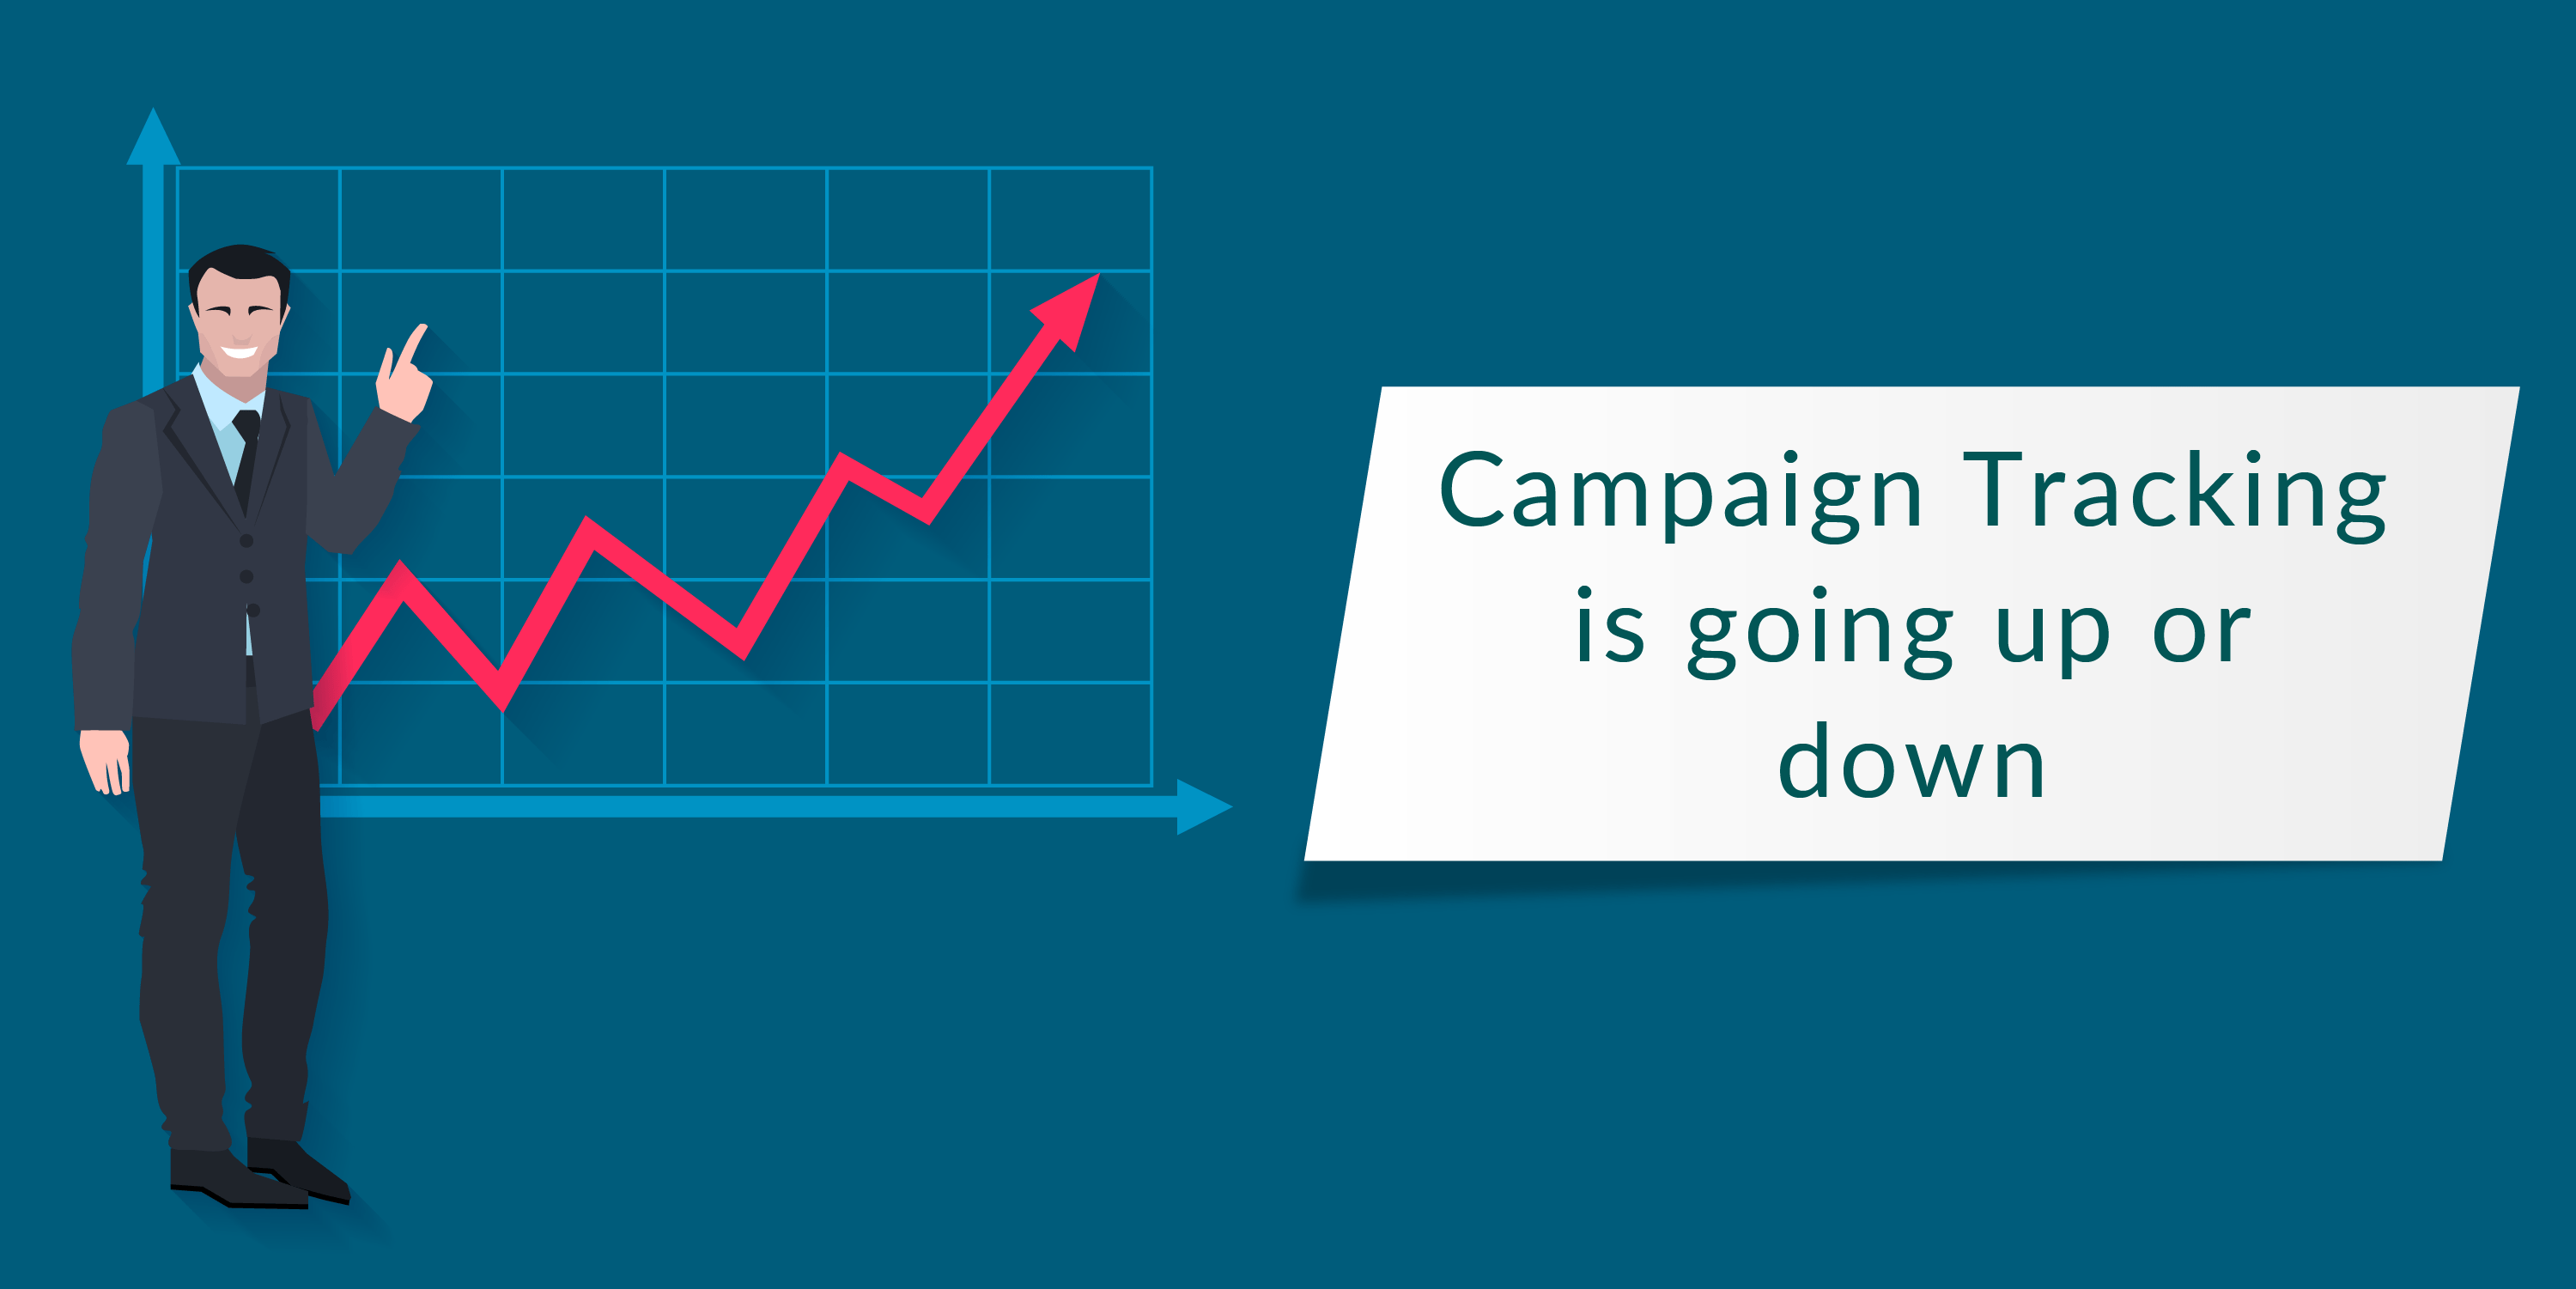 CAMPAIGN TRACKING IS GOING UP OR DOWN